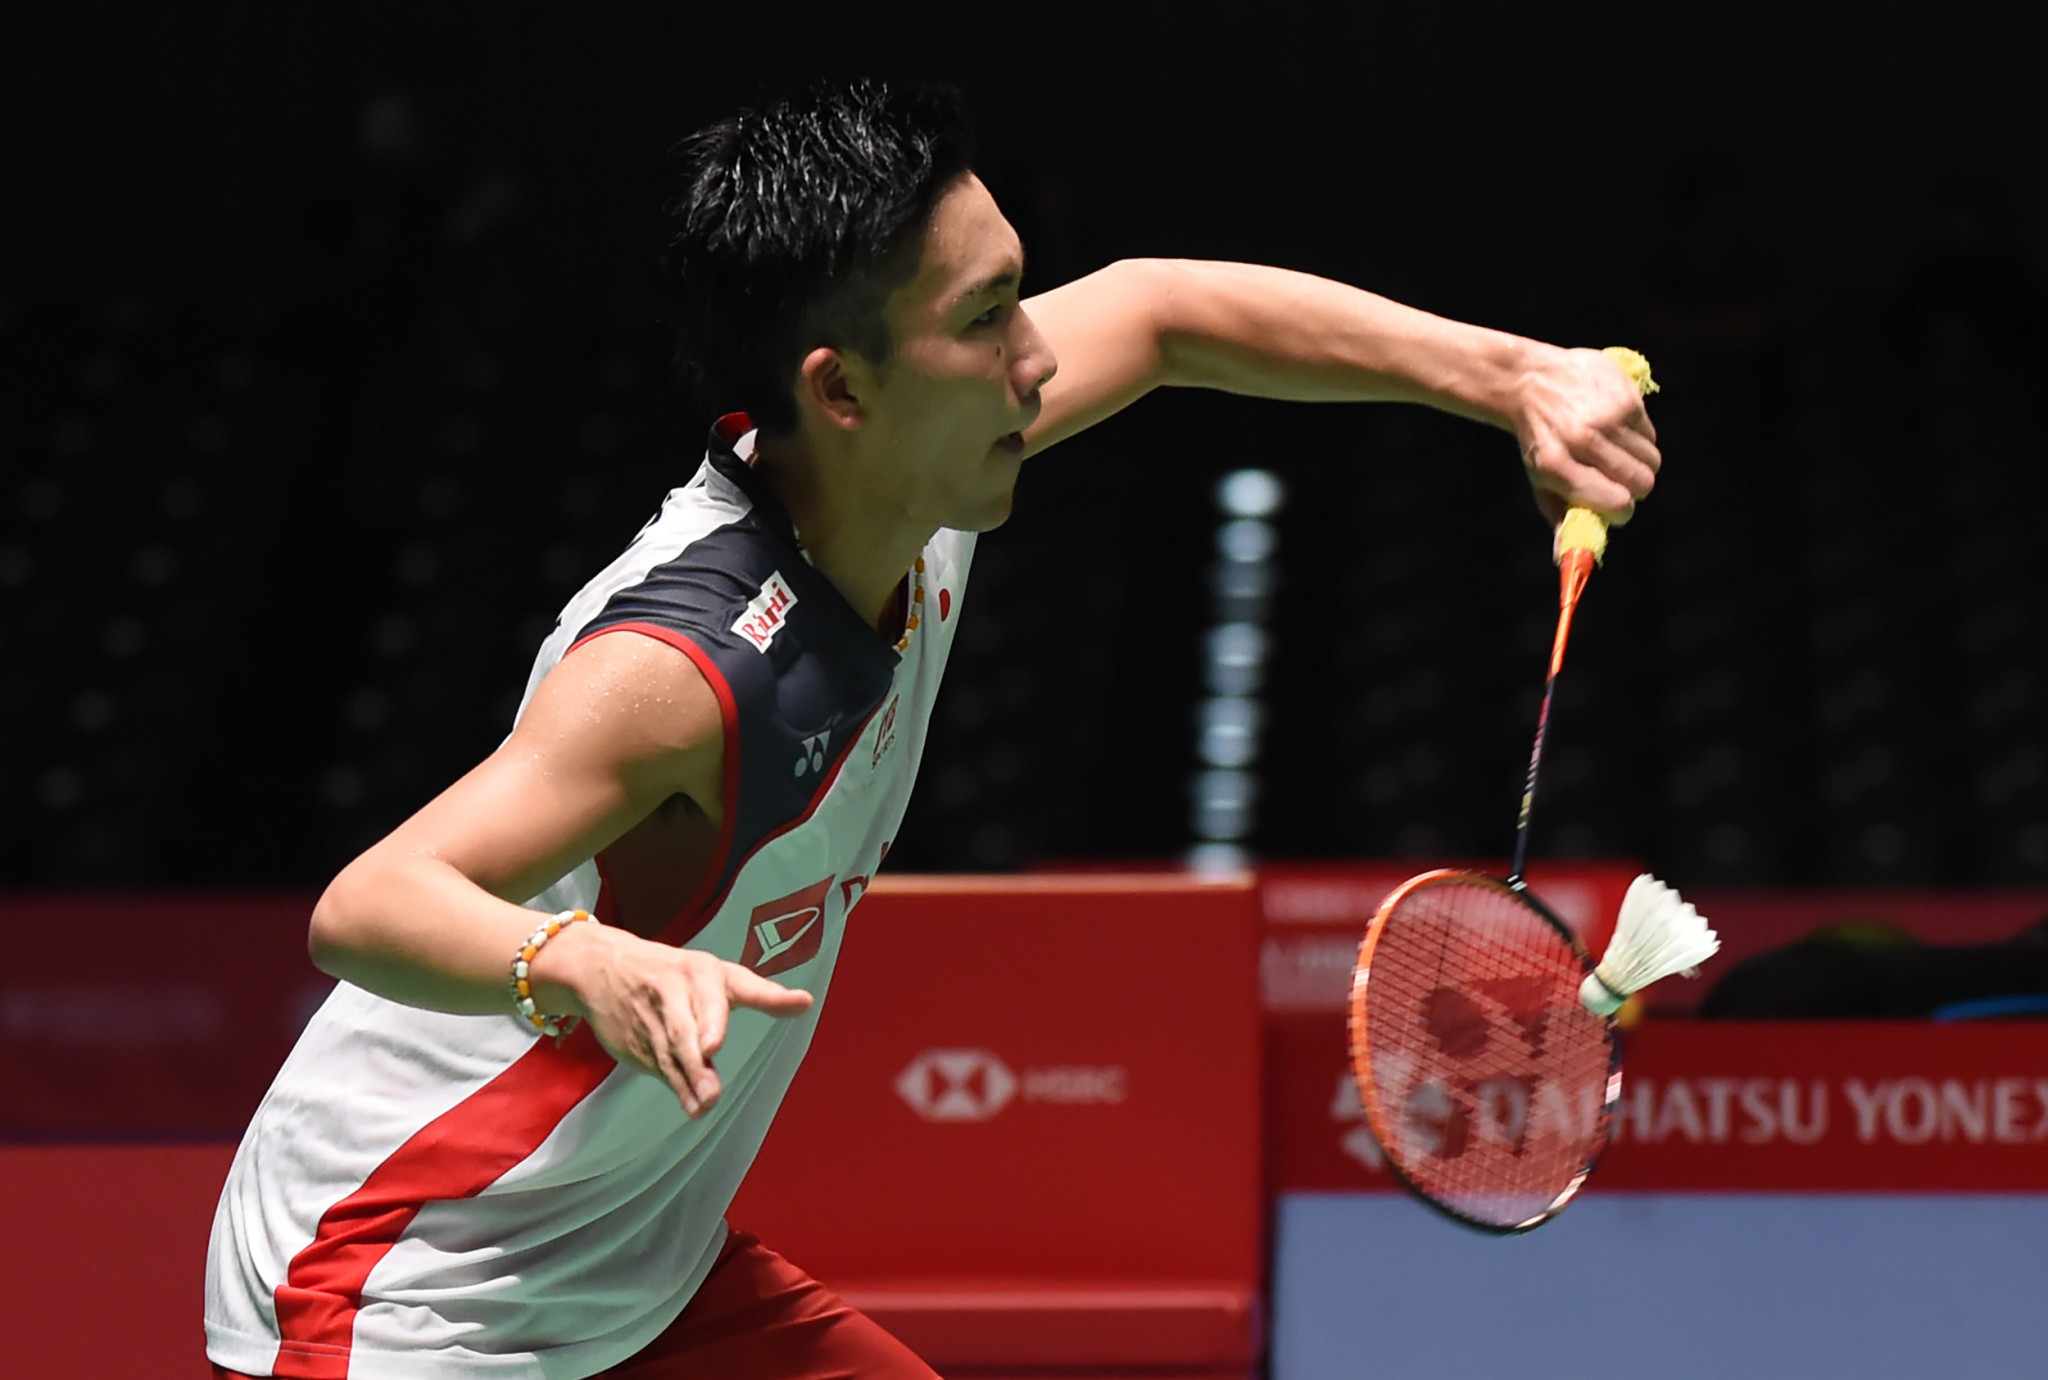 Japan's reigning world champion Kento Momota comfortably progressed to round two ©Getty Images